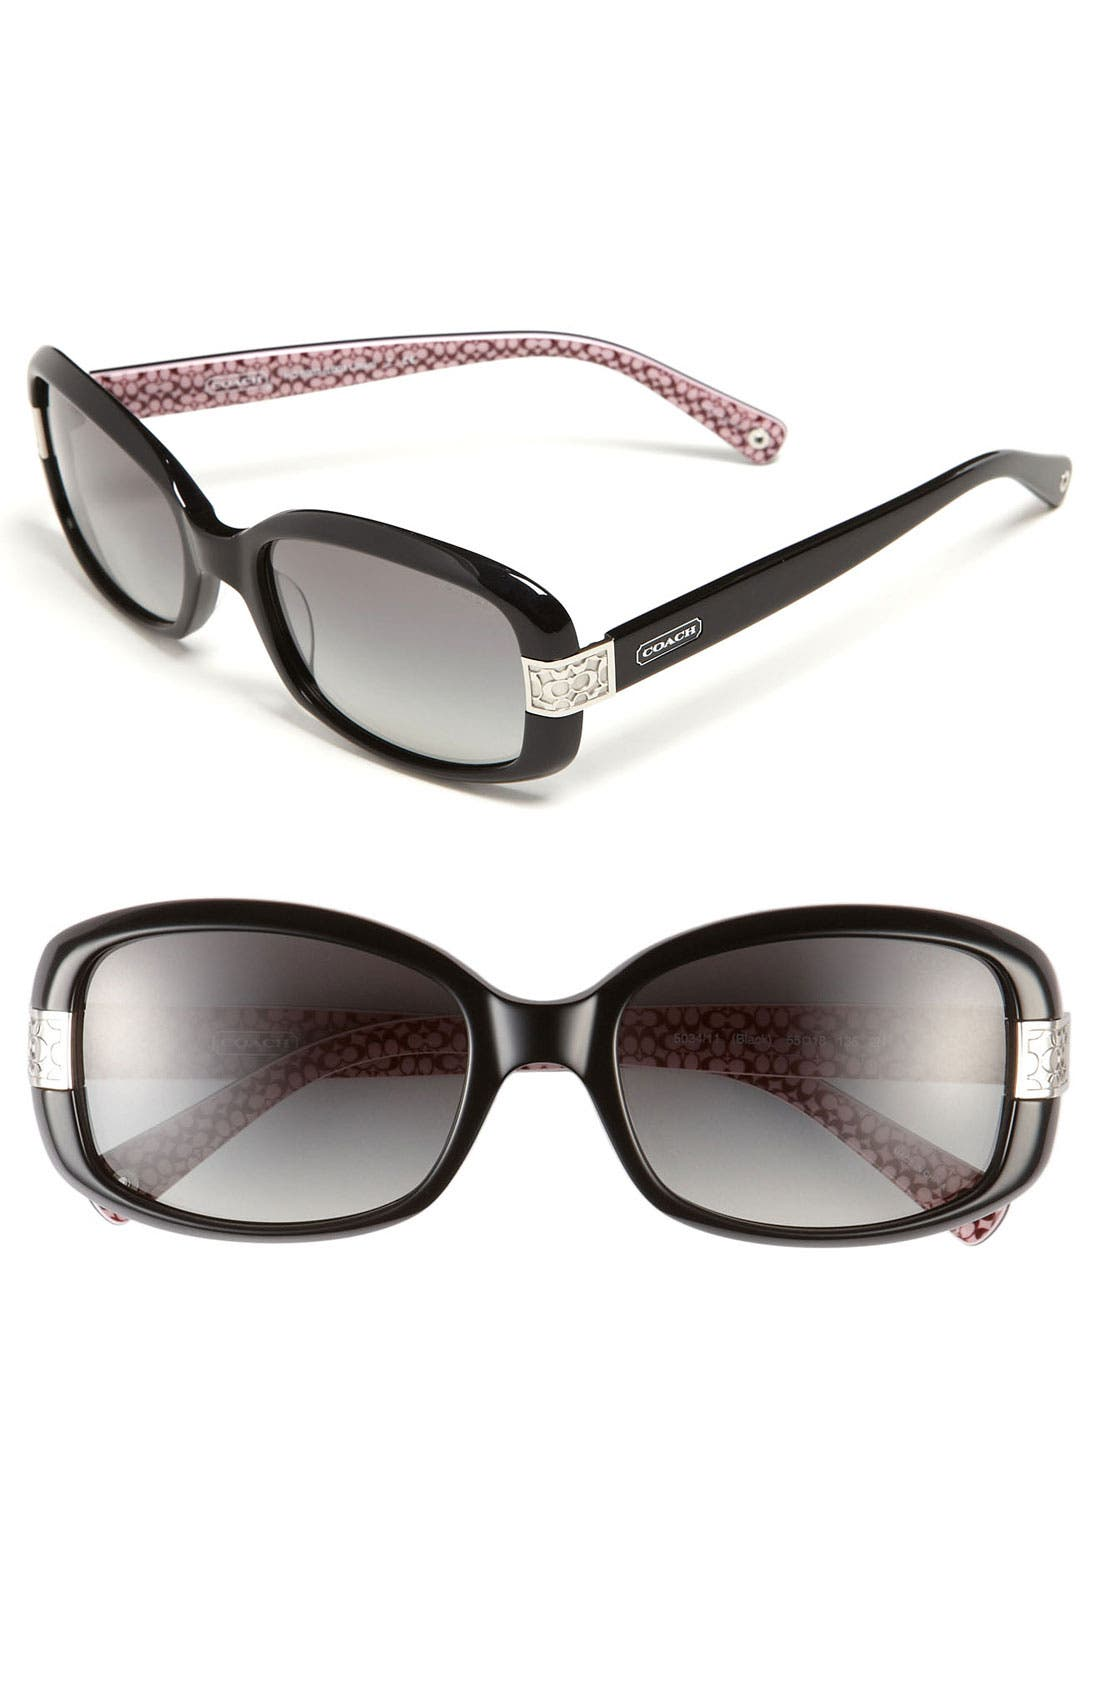 Alternate Image 1 Selected - COACH 'Lillian' Gradient Lens Sunglasses